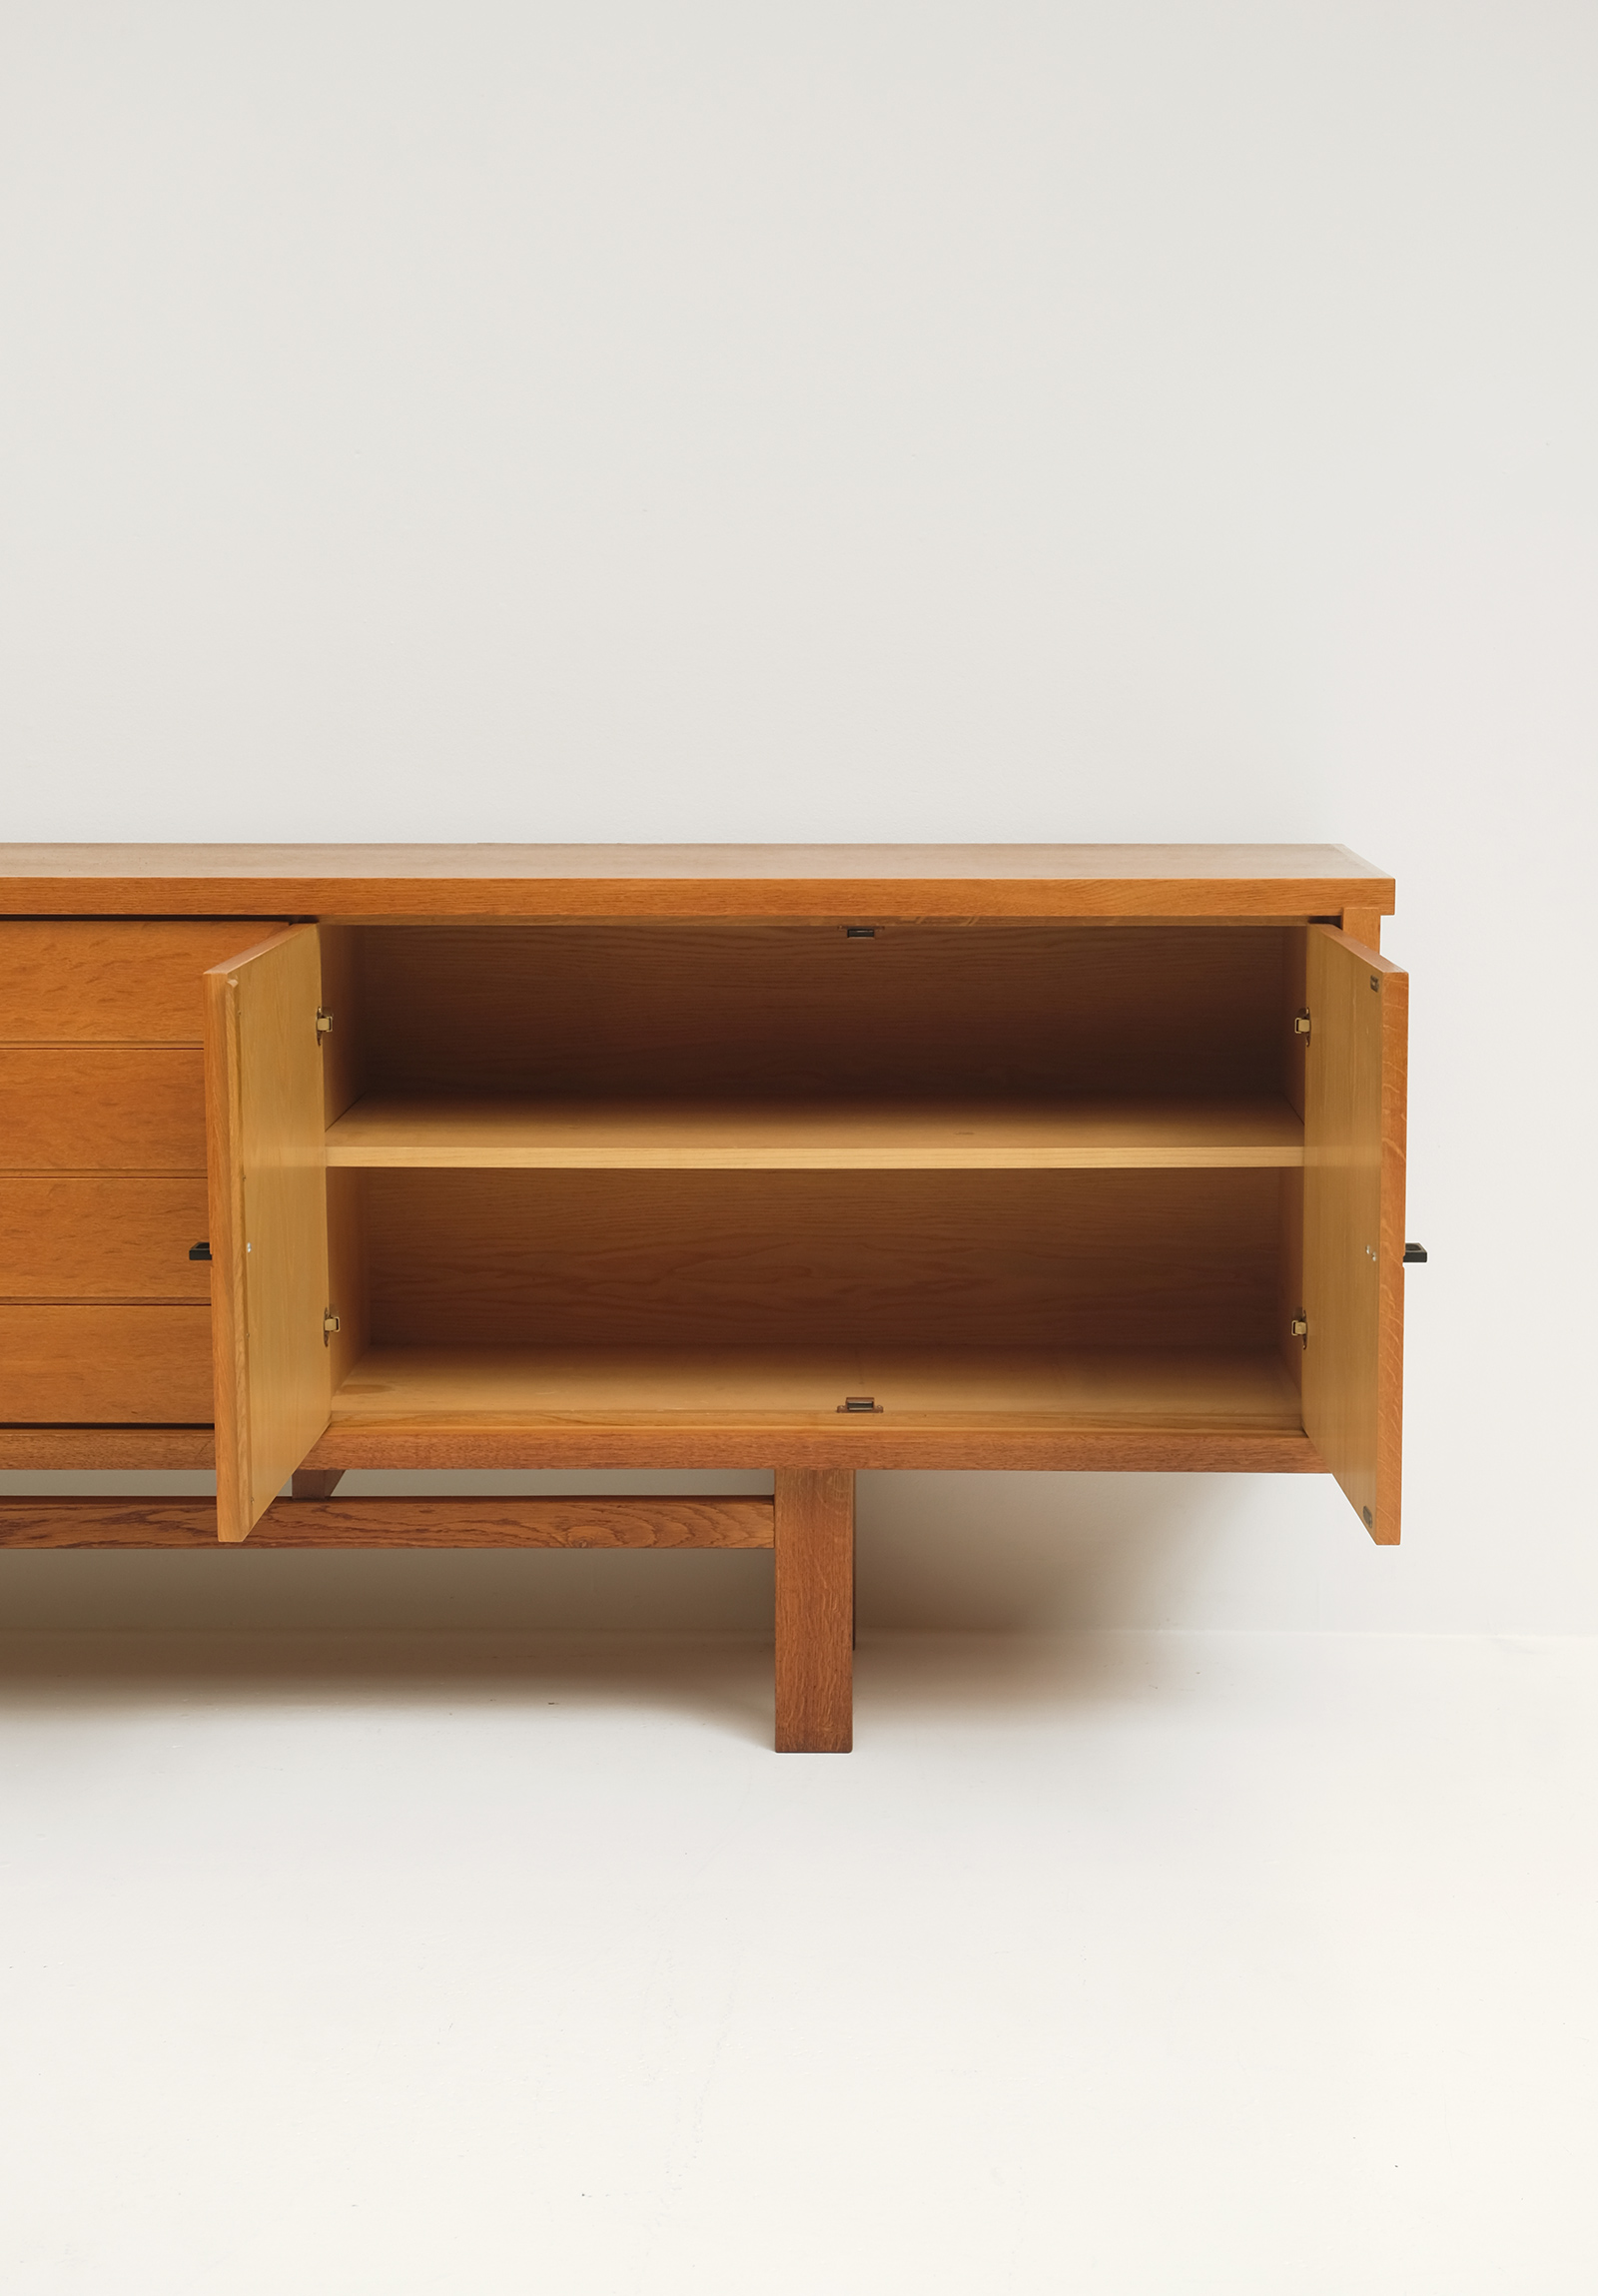 Brutalist Oak Sideboard with Graphic Door Panels